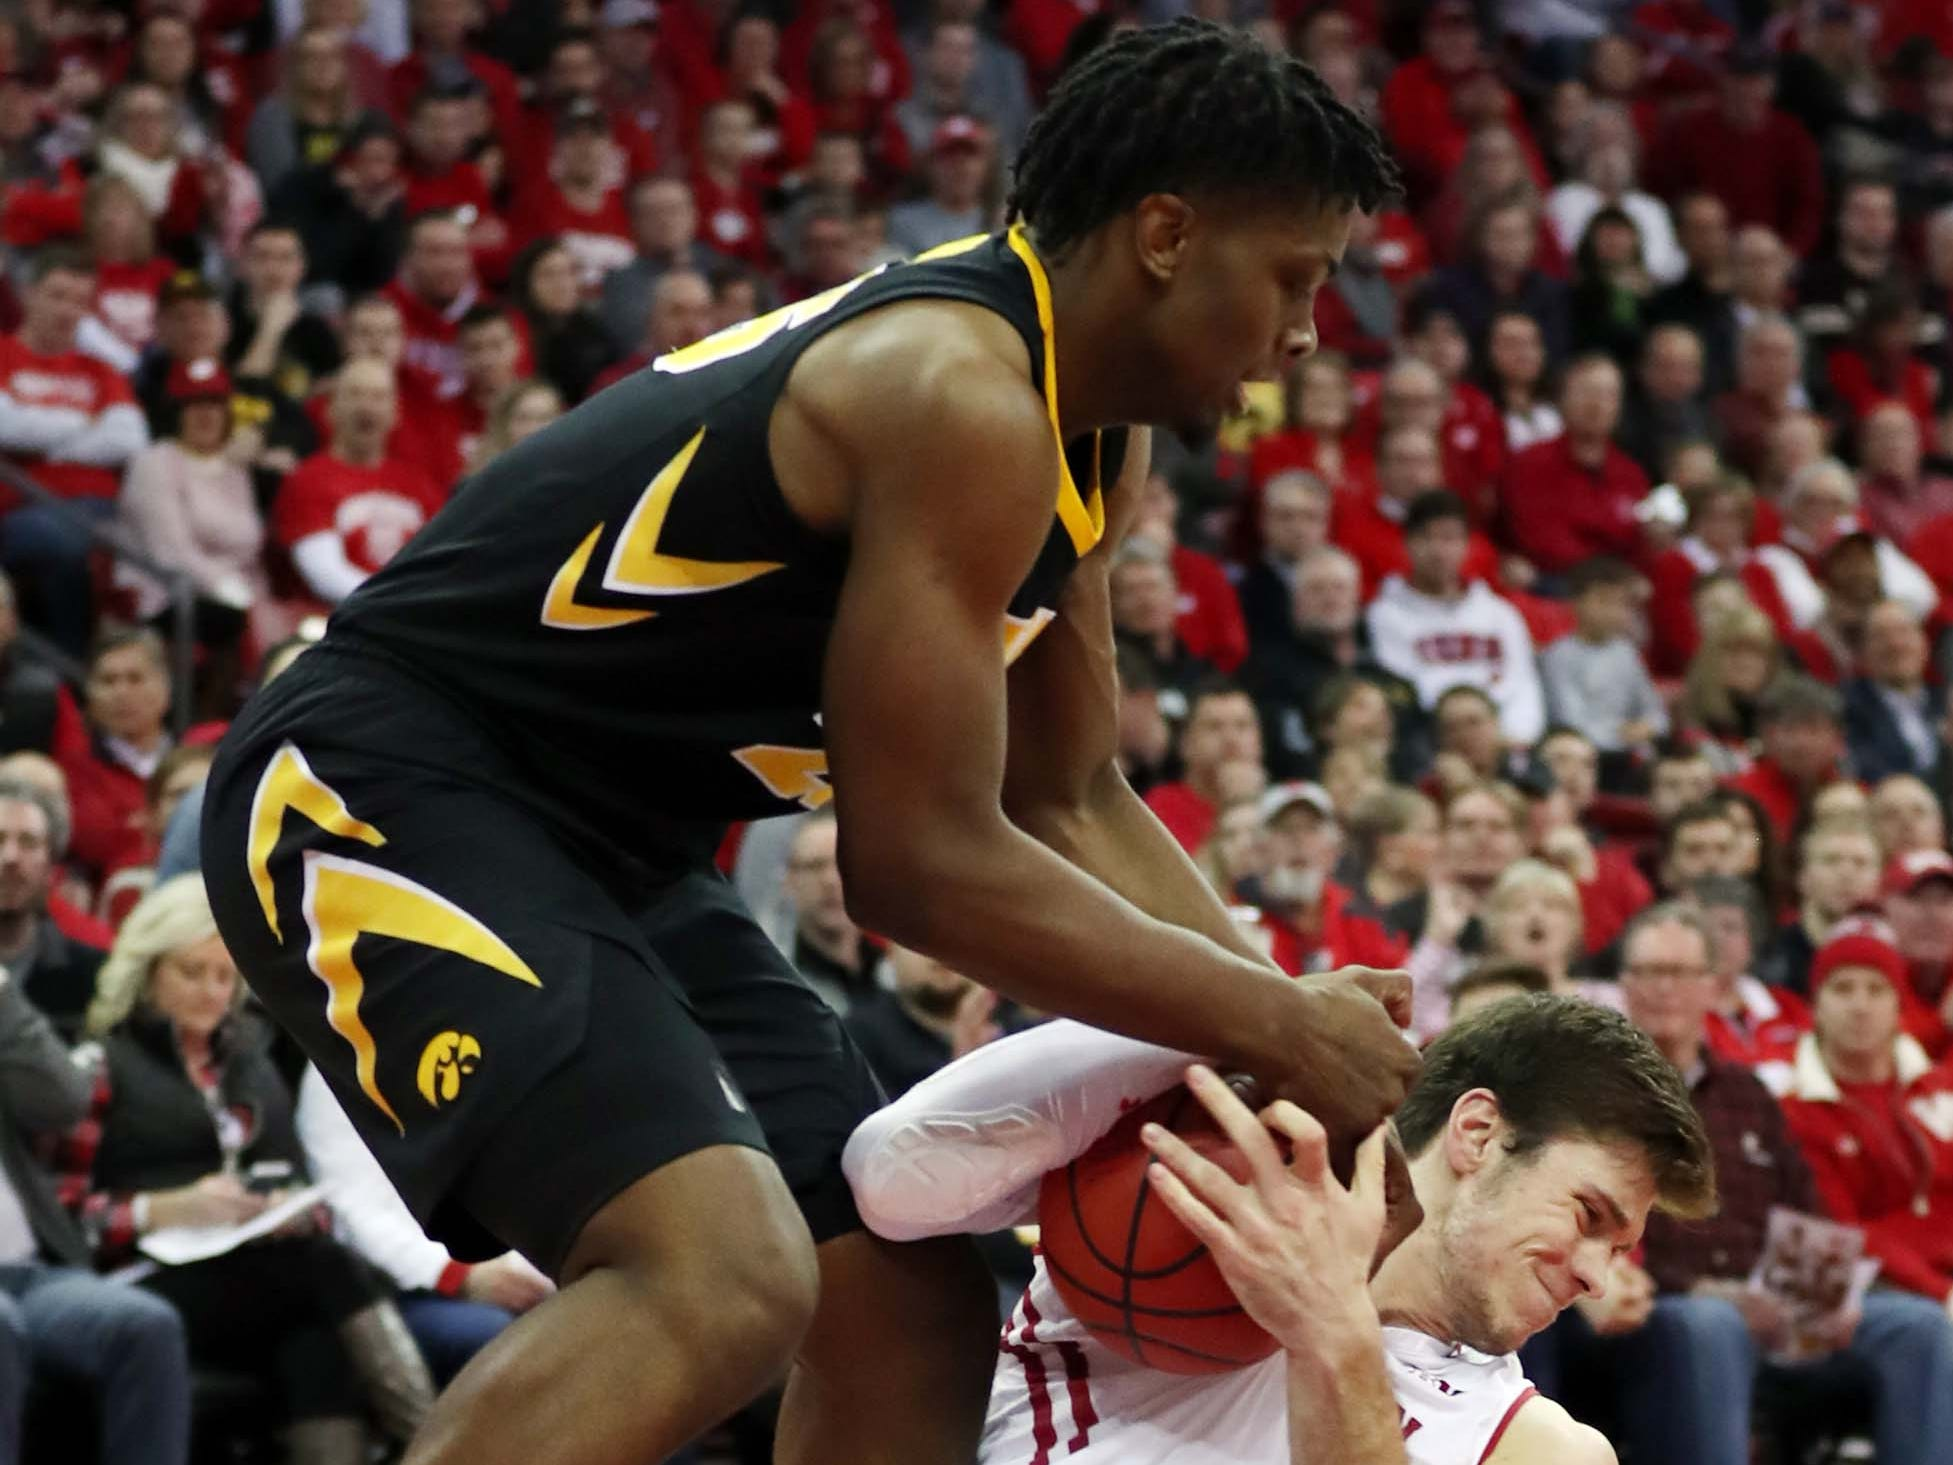 Badgers forward Ethan Happ tries to muscle a rebound away from Iowa forward Tyler Cook.